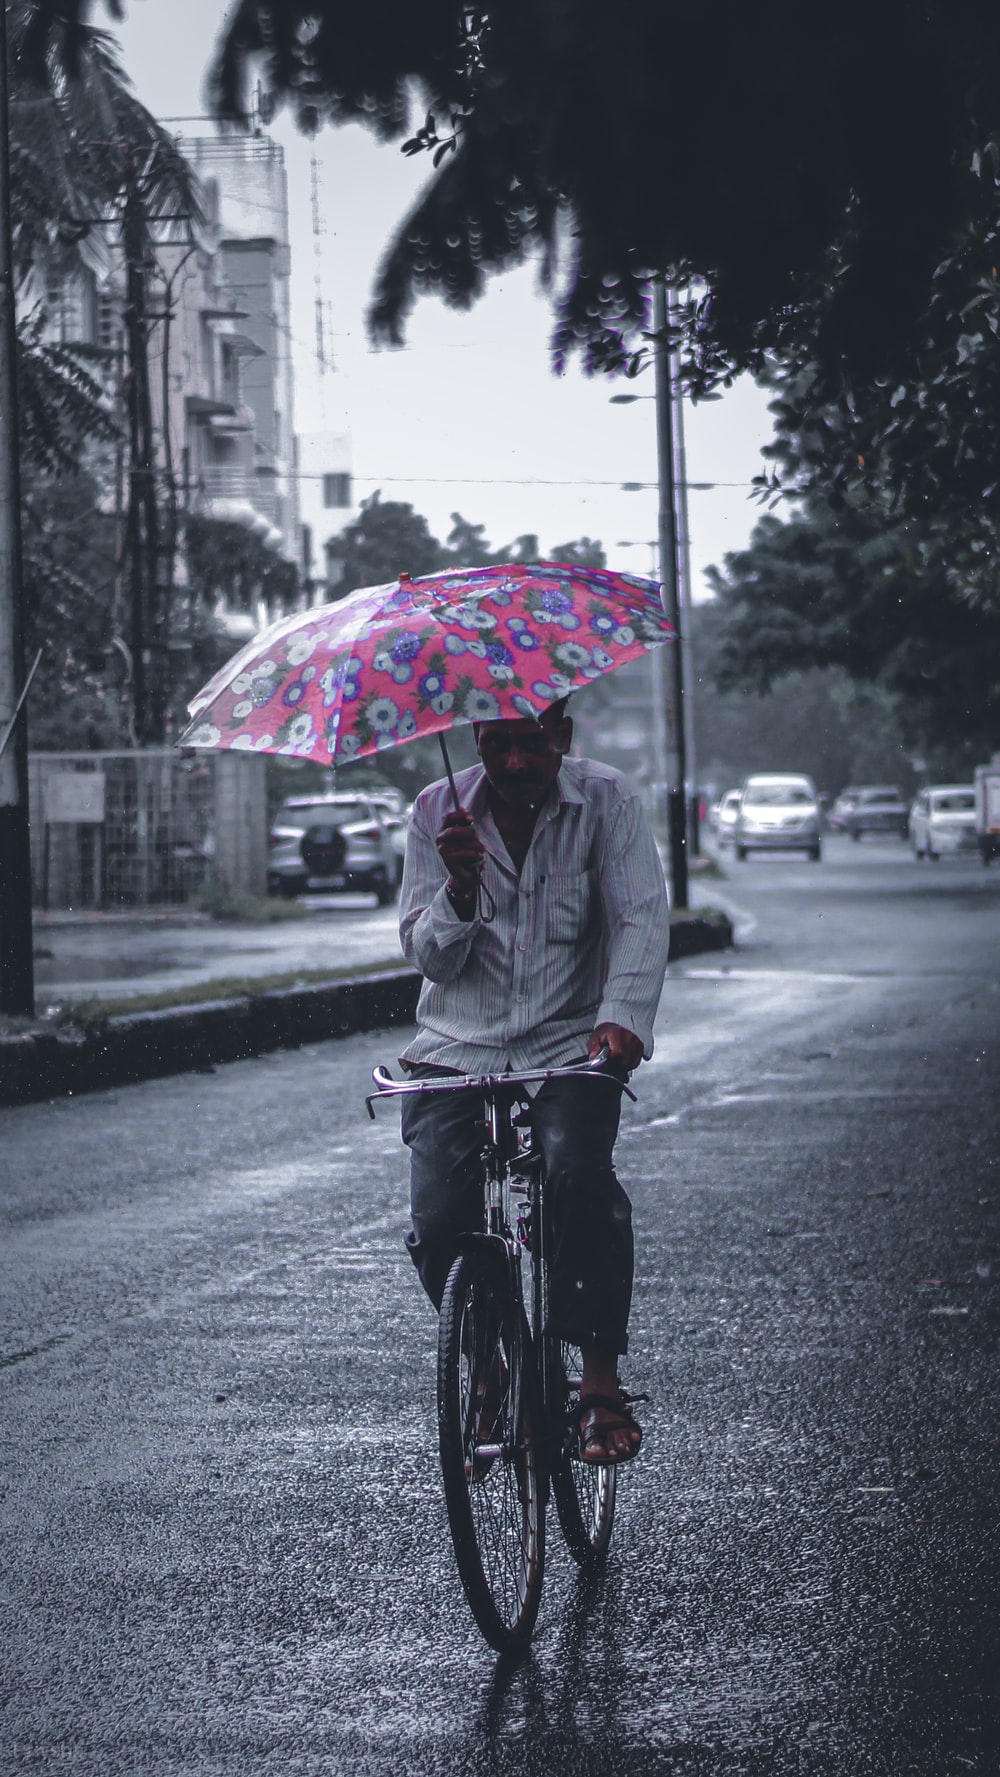 man in gray jacket riding bicycle with umbrella on road during daytime